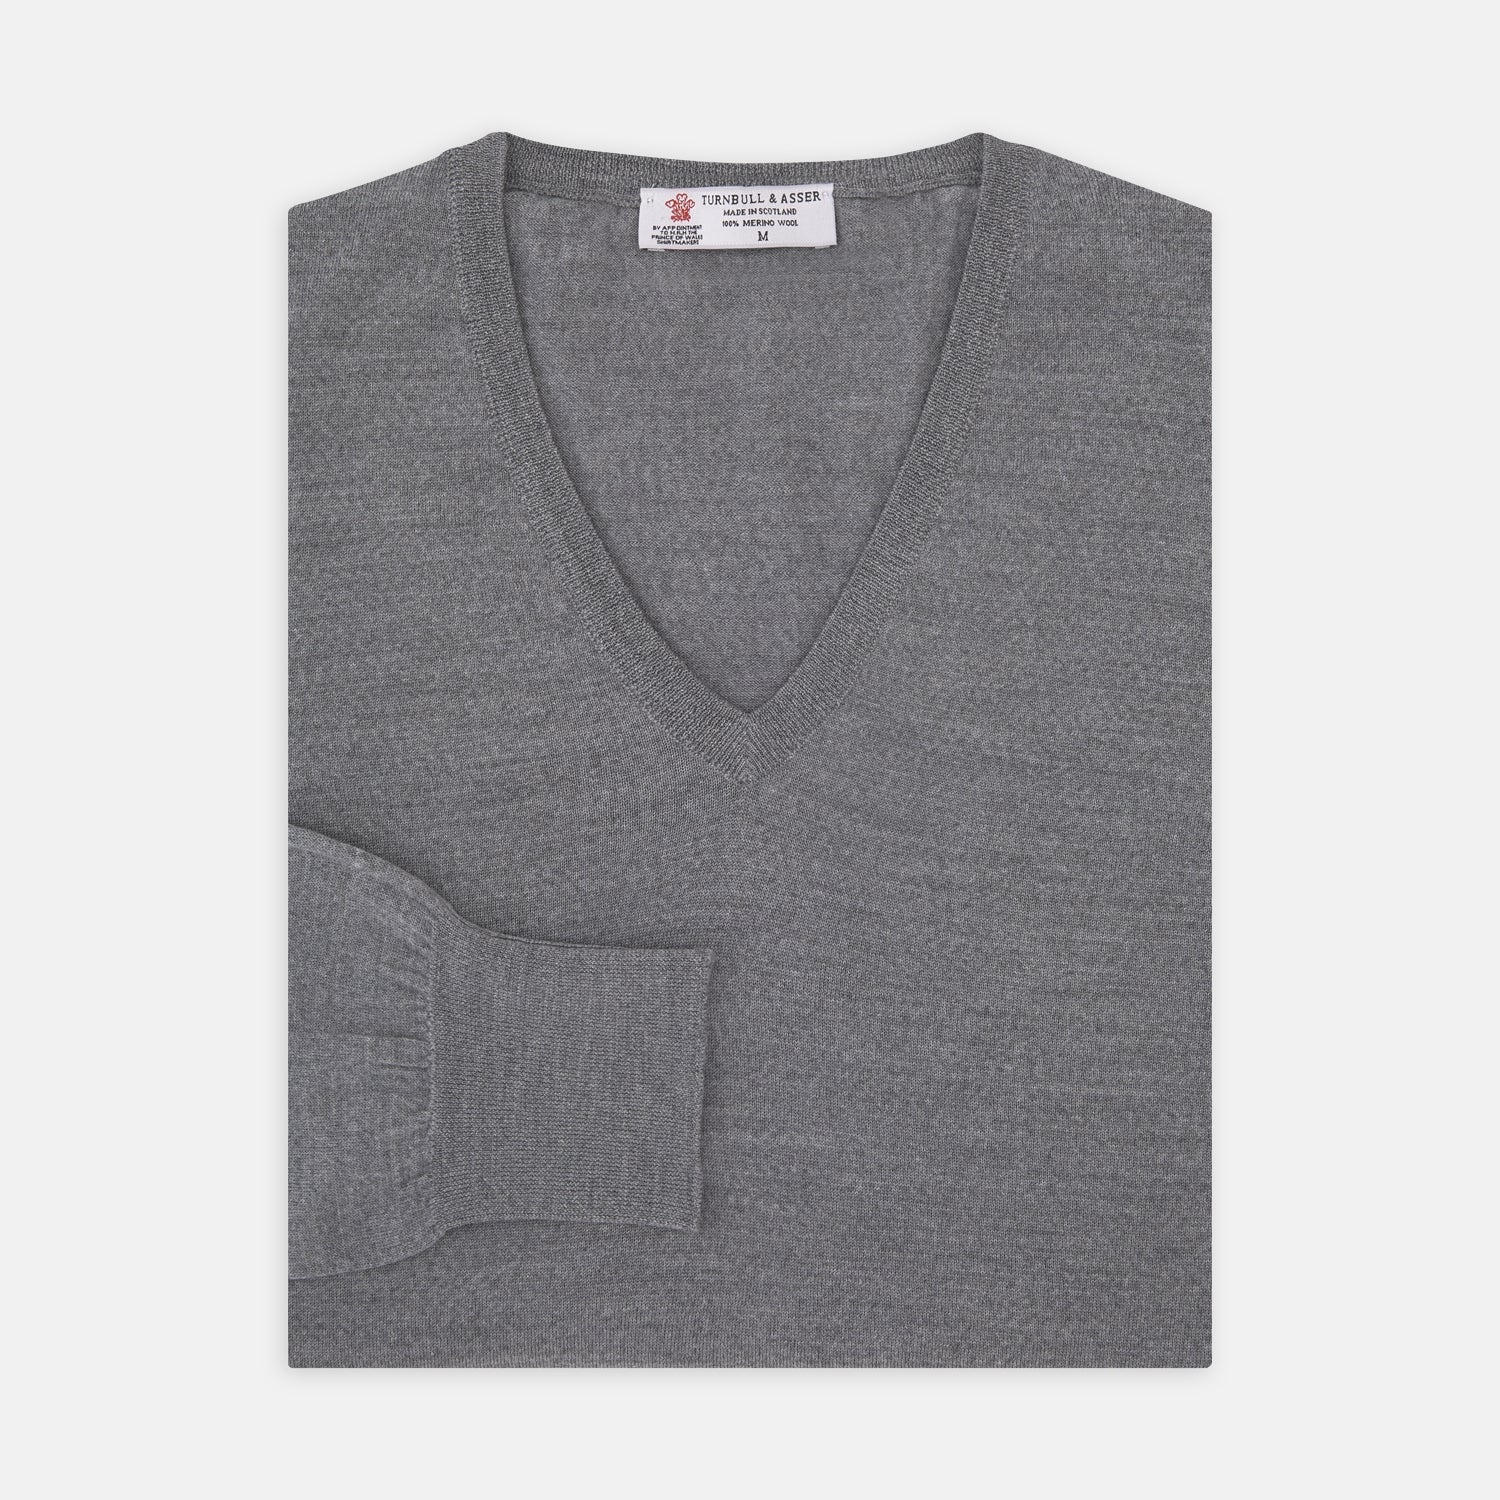 Grey V-Neck Merino Wool Jumper - XXL from Turnbull & Asser